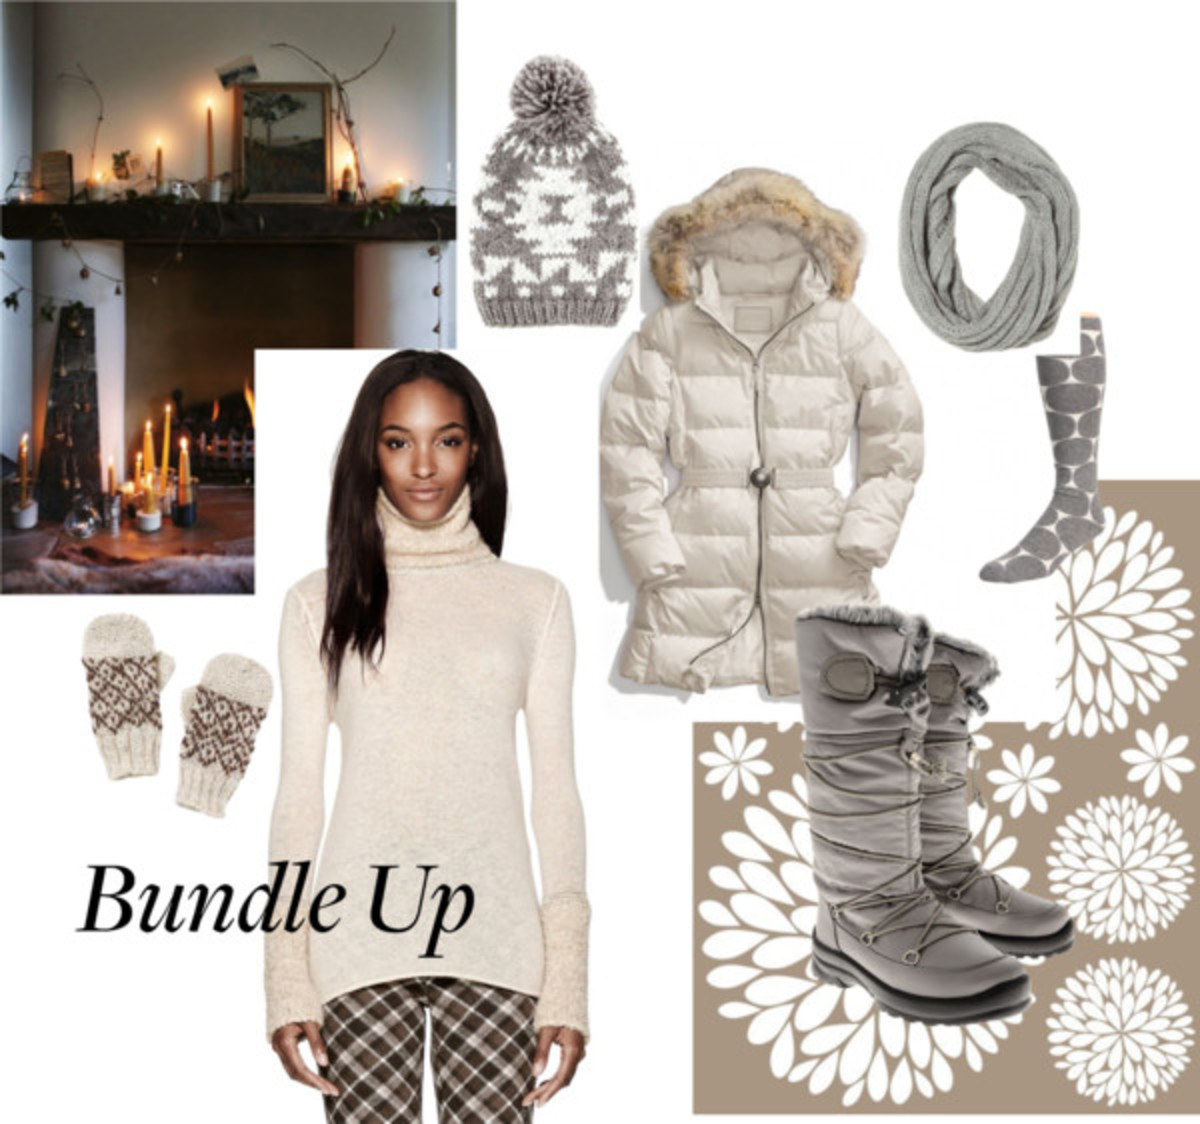 Bundle Up Fashion for a Snow Storm